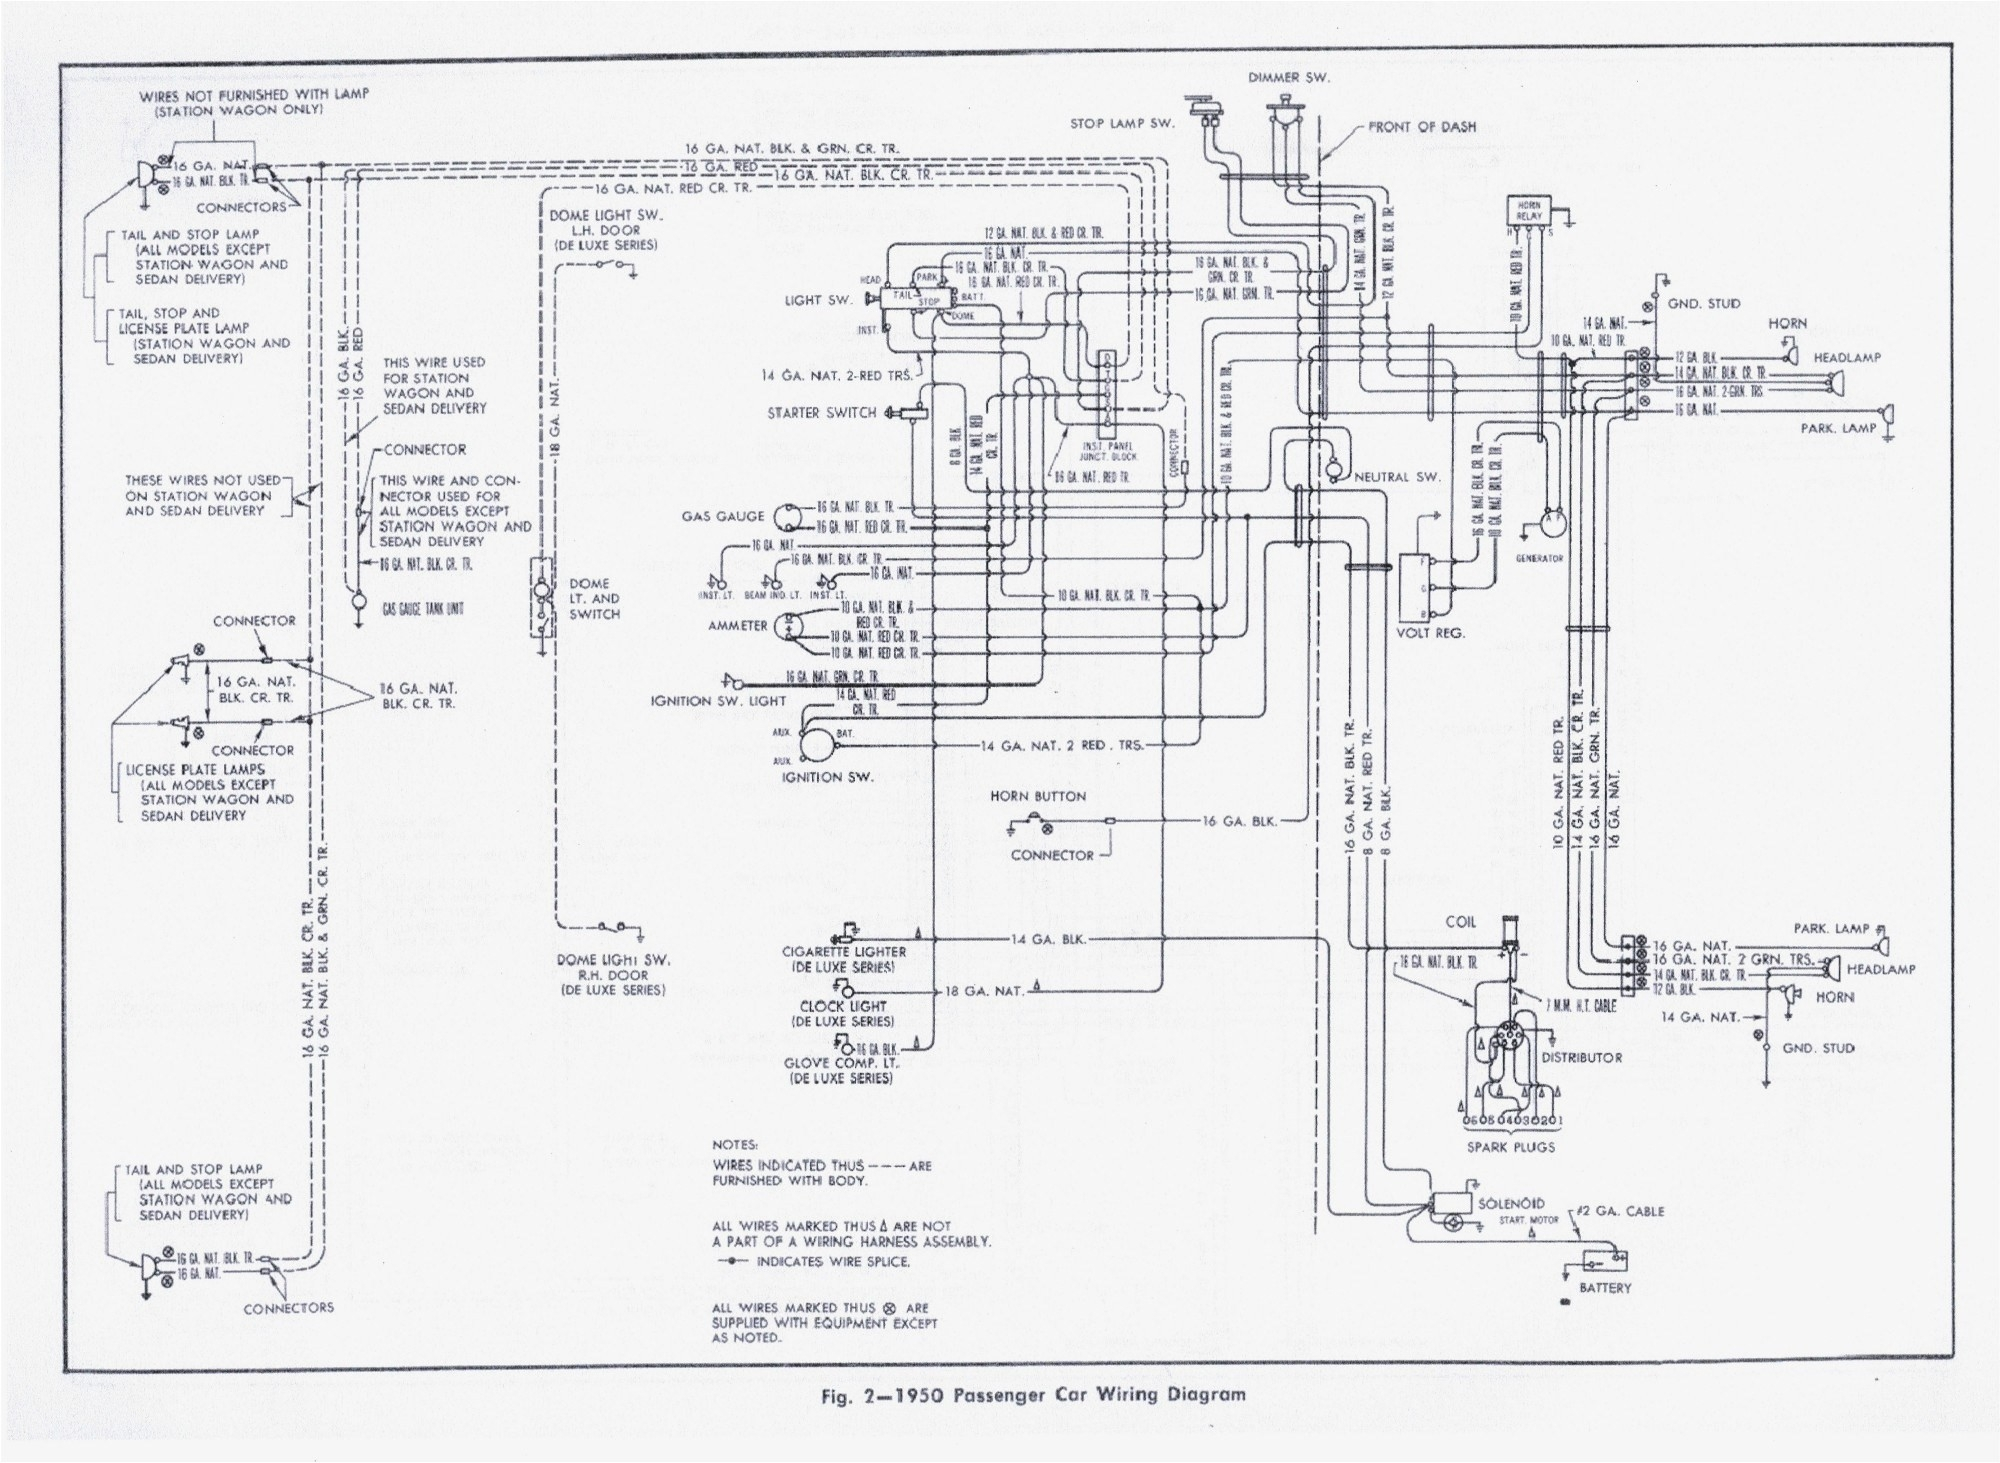 hight resolution of  2002 ford focus wiring harness audi tt fuse box diagram truck trailer wiring diagrams wiring diagrams for 2000 dodge ram 2500 fuel pump